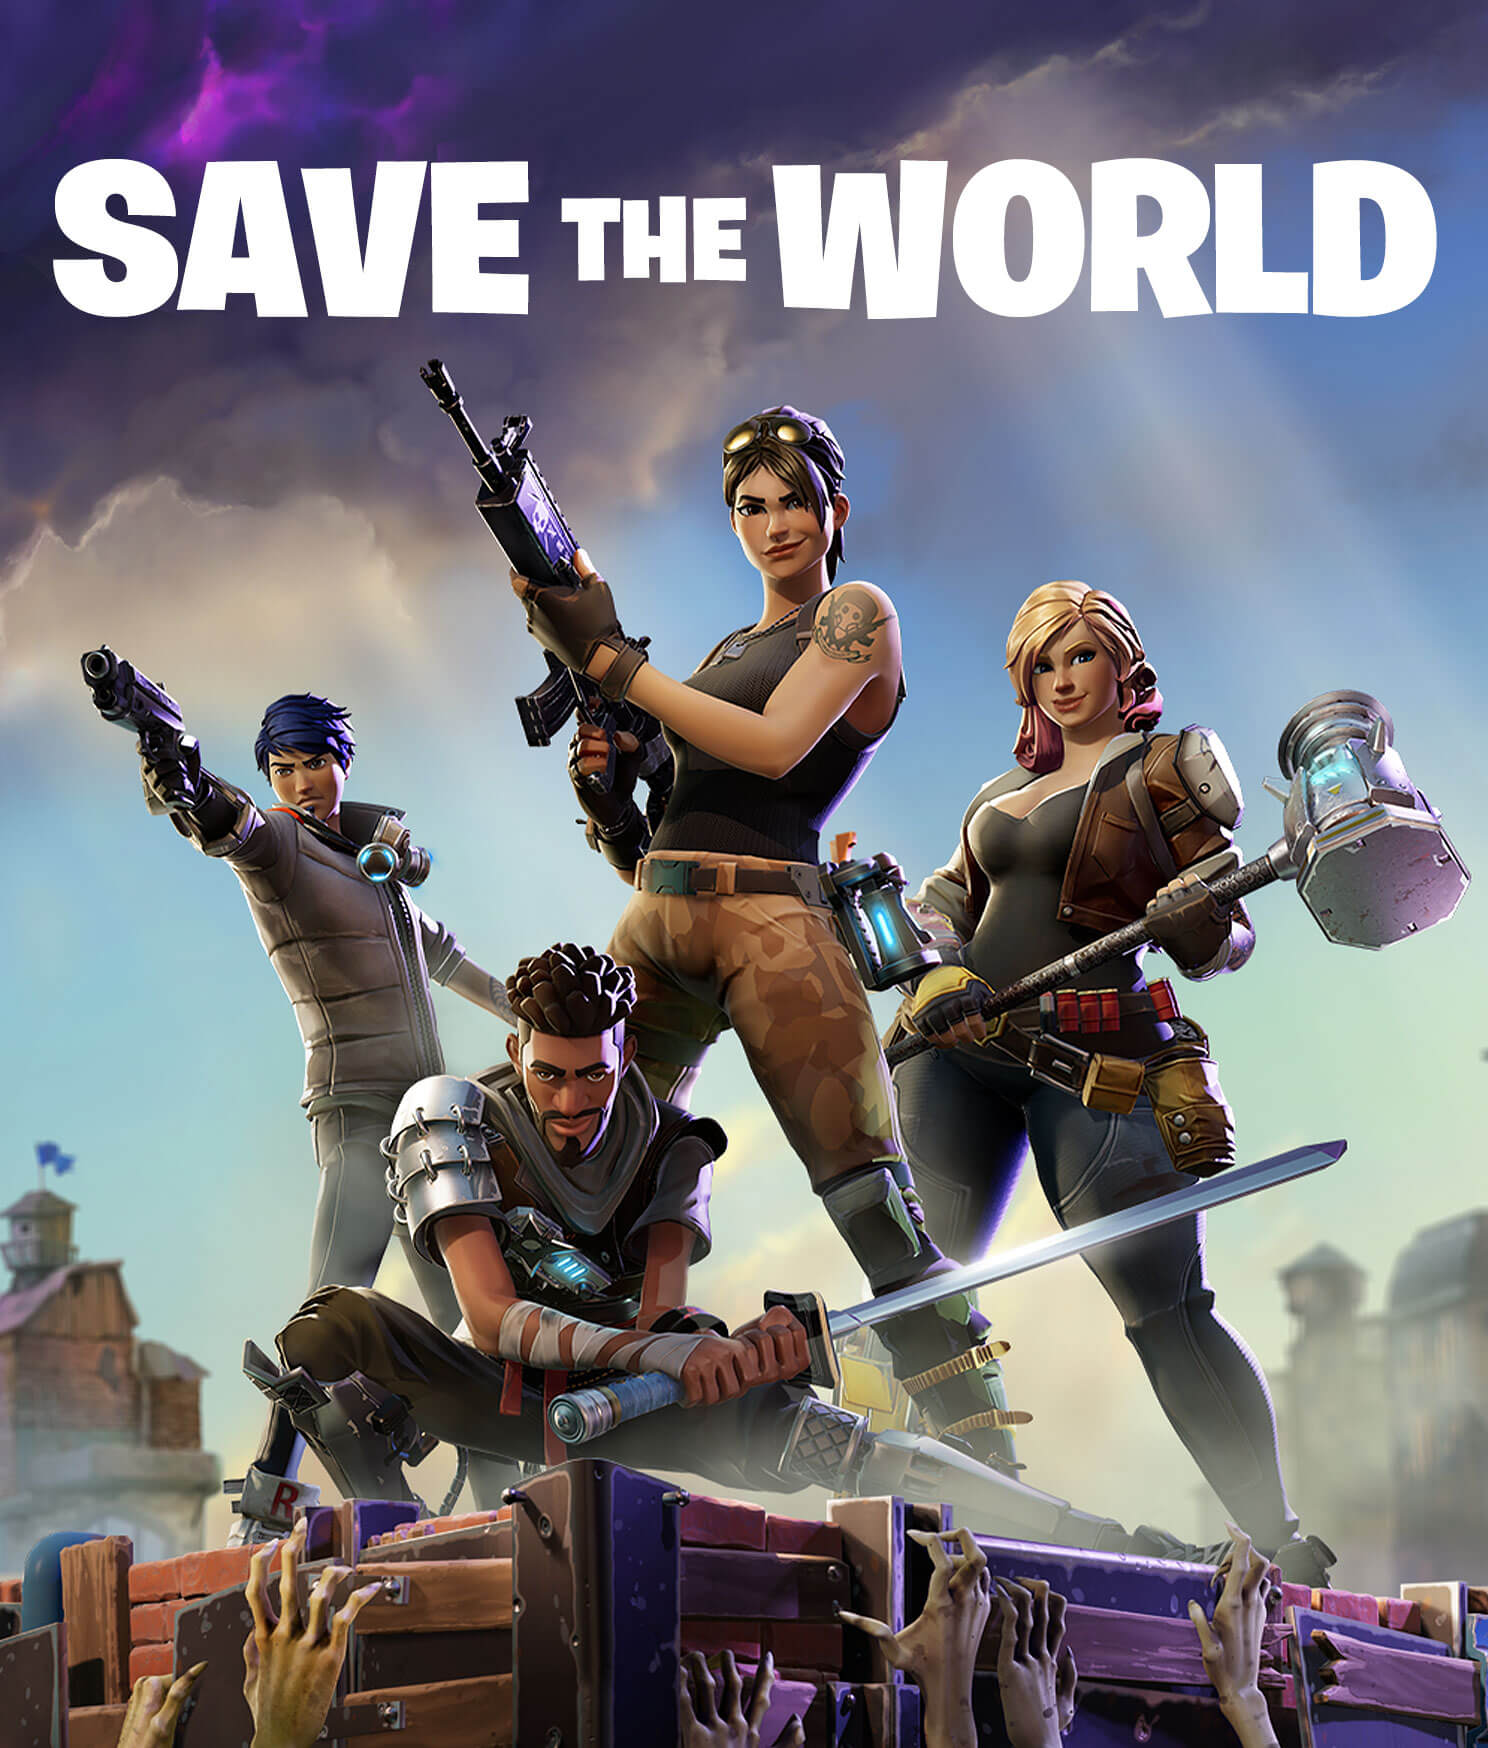 Fortnite Save the World | PvE Action-Building Co-Op Campaign - Fortnite